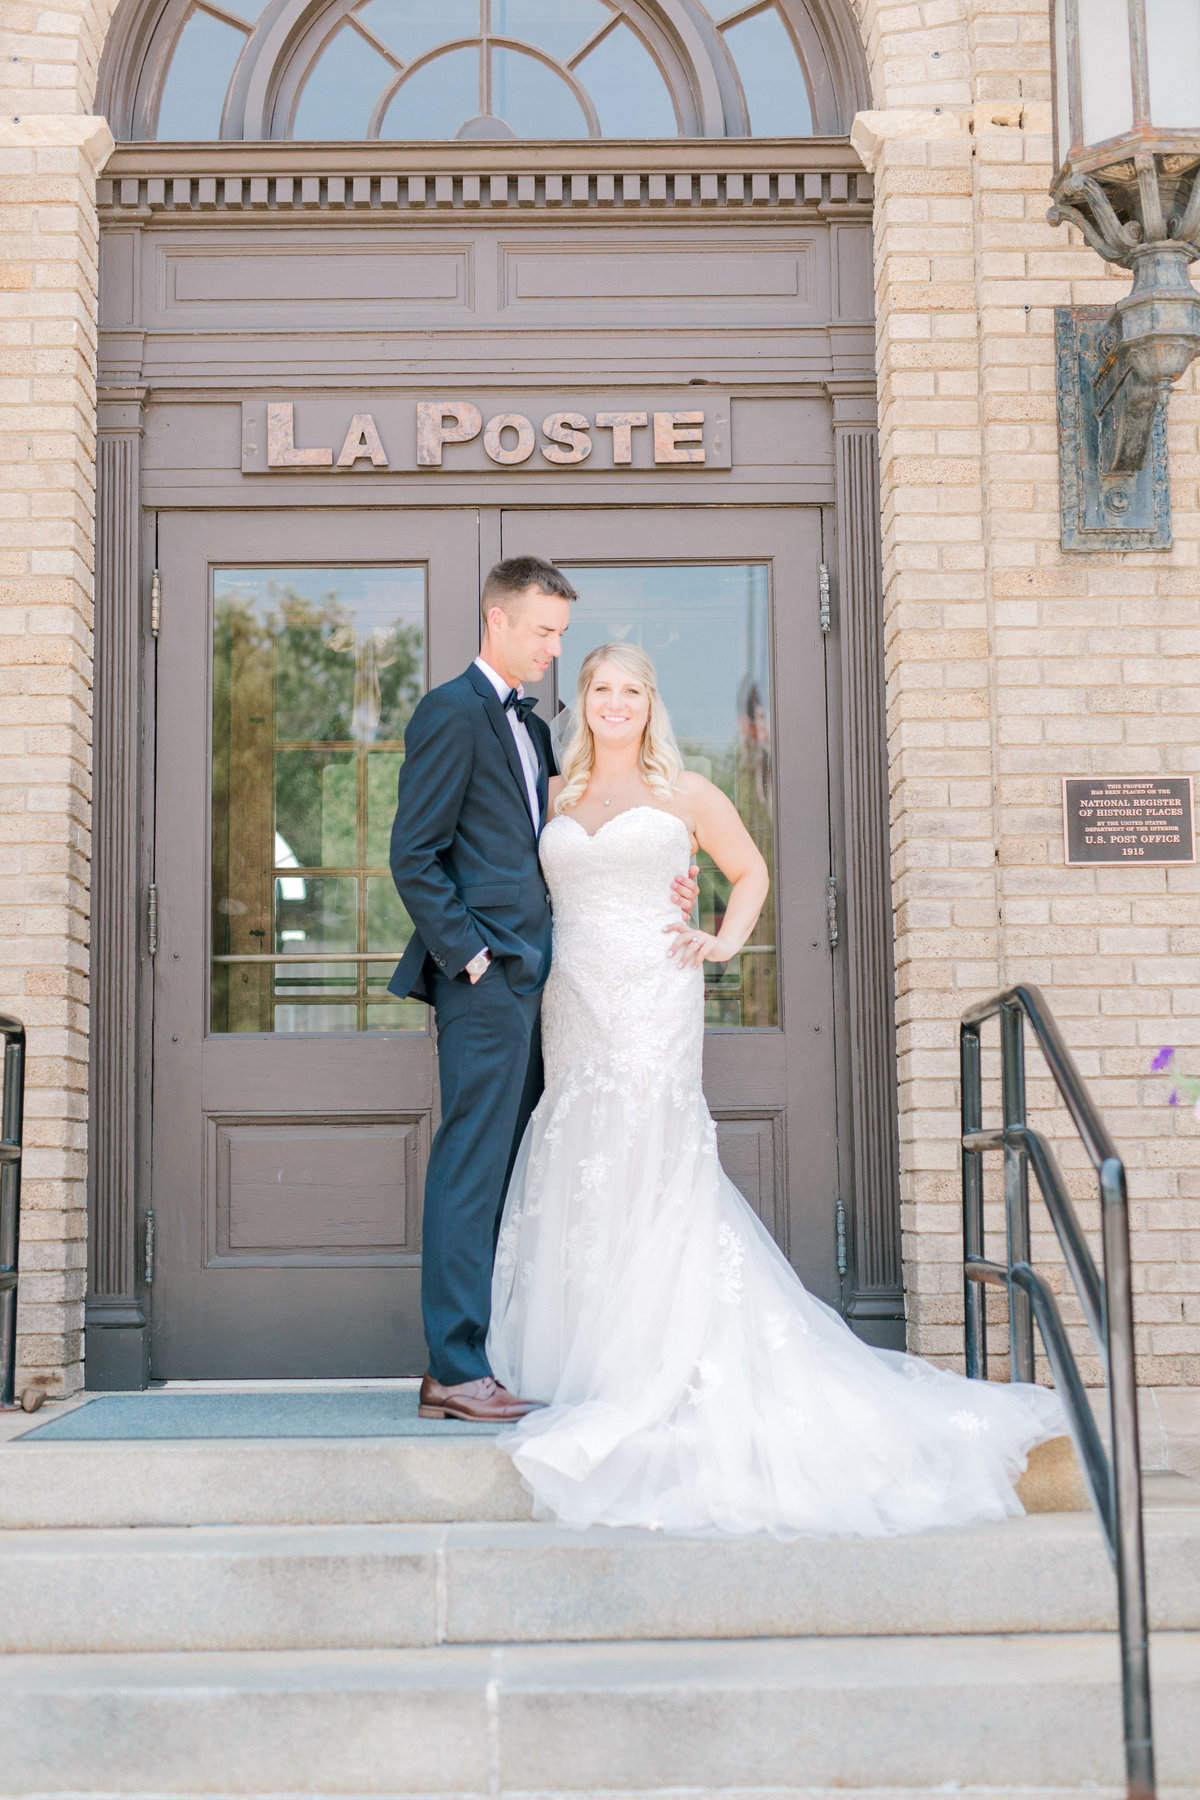 la poste perry iowa wedding photographer danielle+daniel-4866